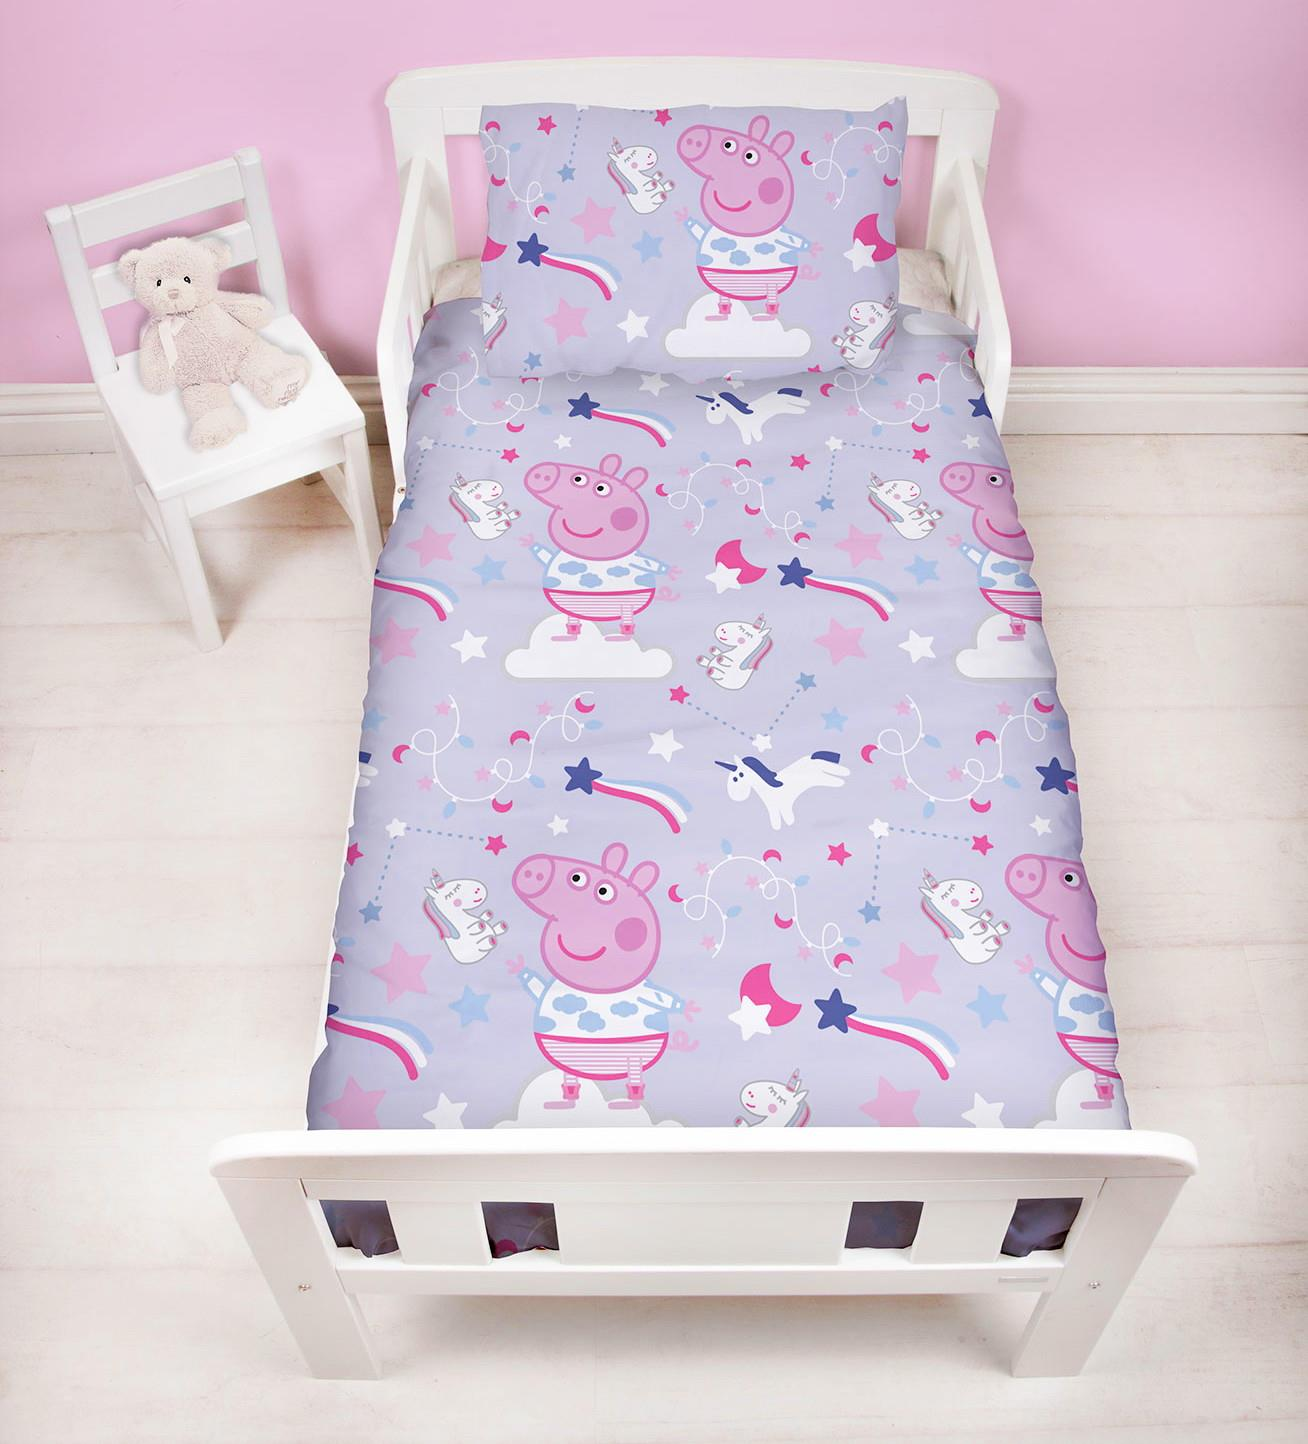 Official-Peppa-Pig-George-Duvet-Covers-Single-Double-Reversible-Bedding thumbnail 36